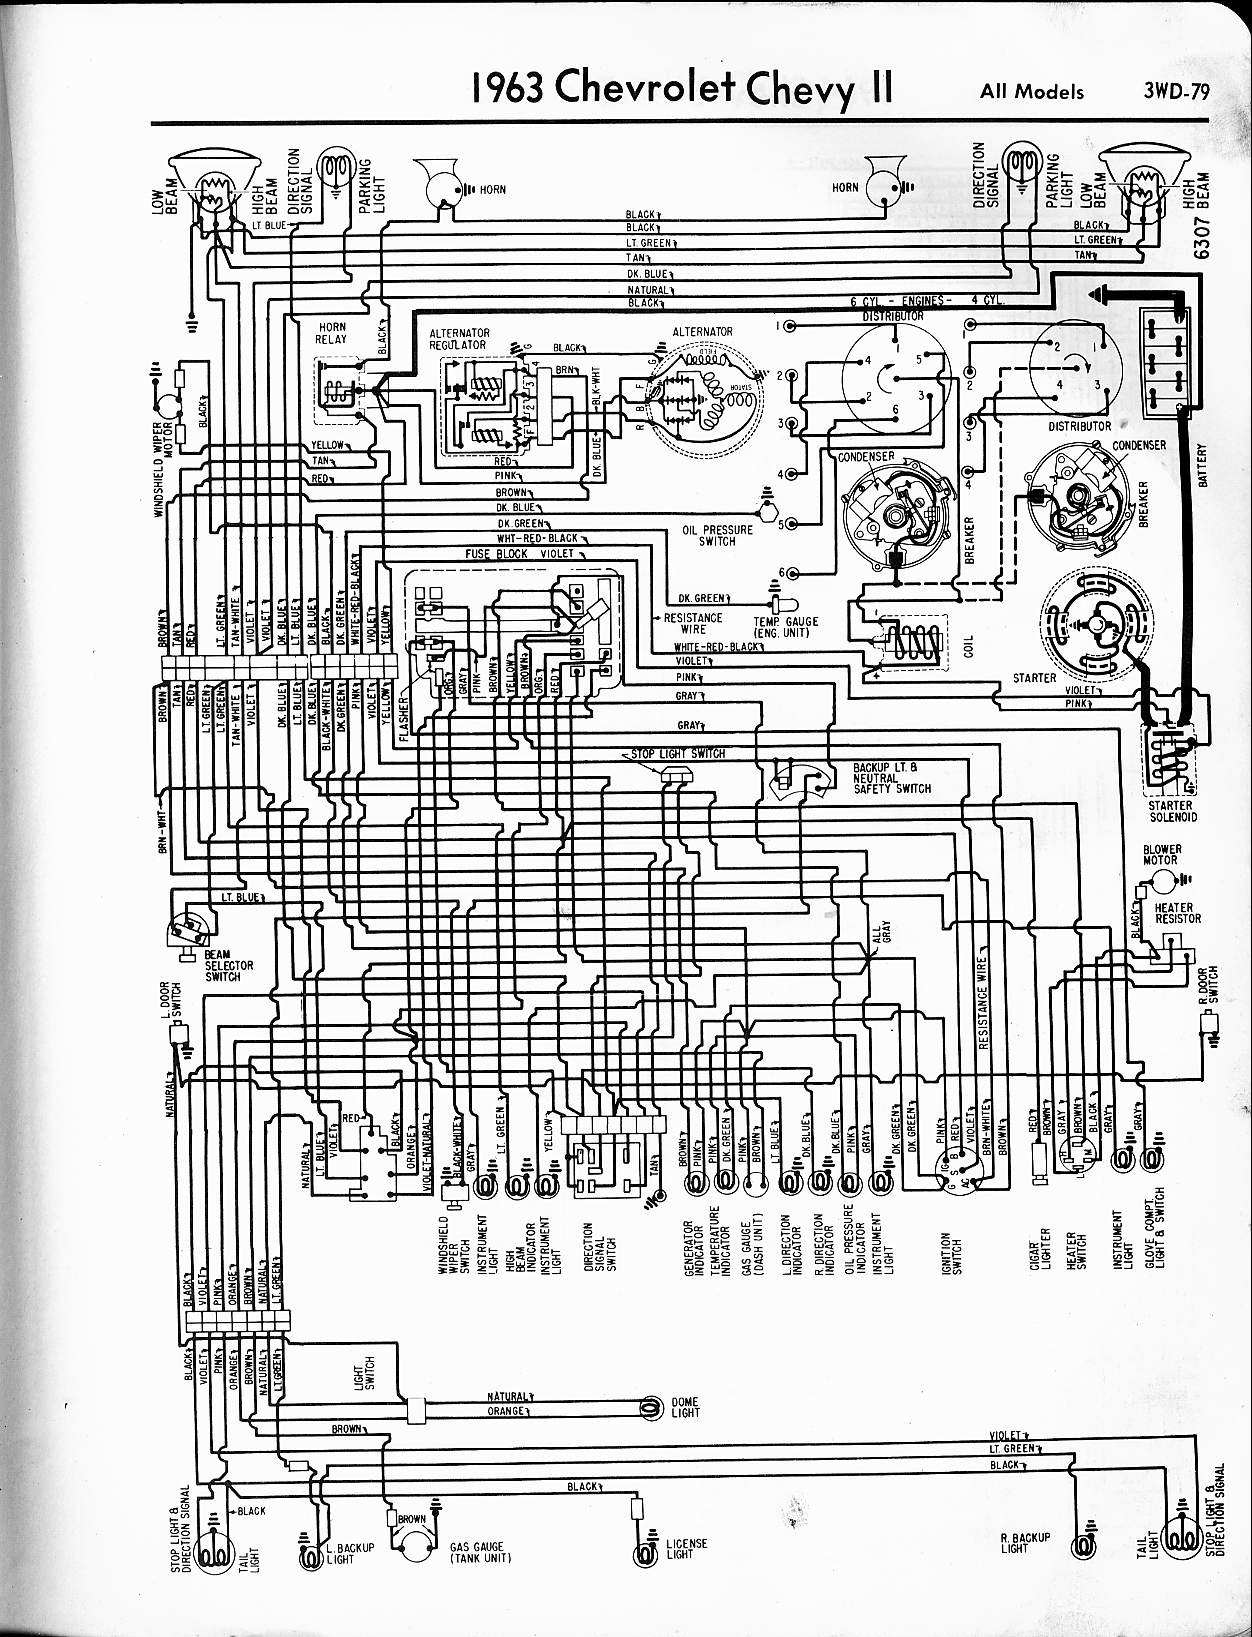 57 65 Chevy Wiring Diagrams 2002 Chevrolet Impala Diagram 1963 Ii All Models